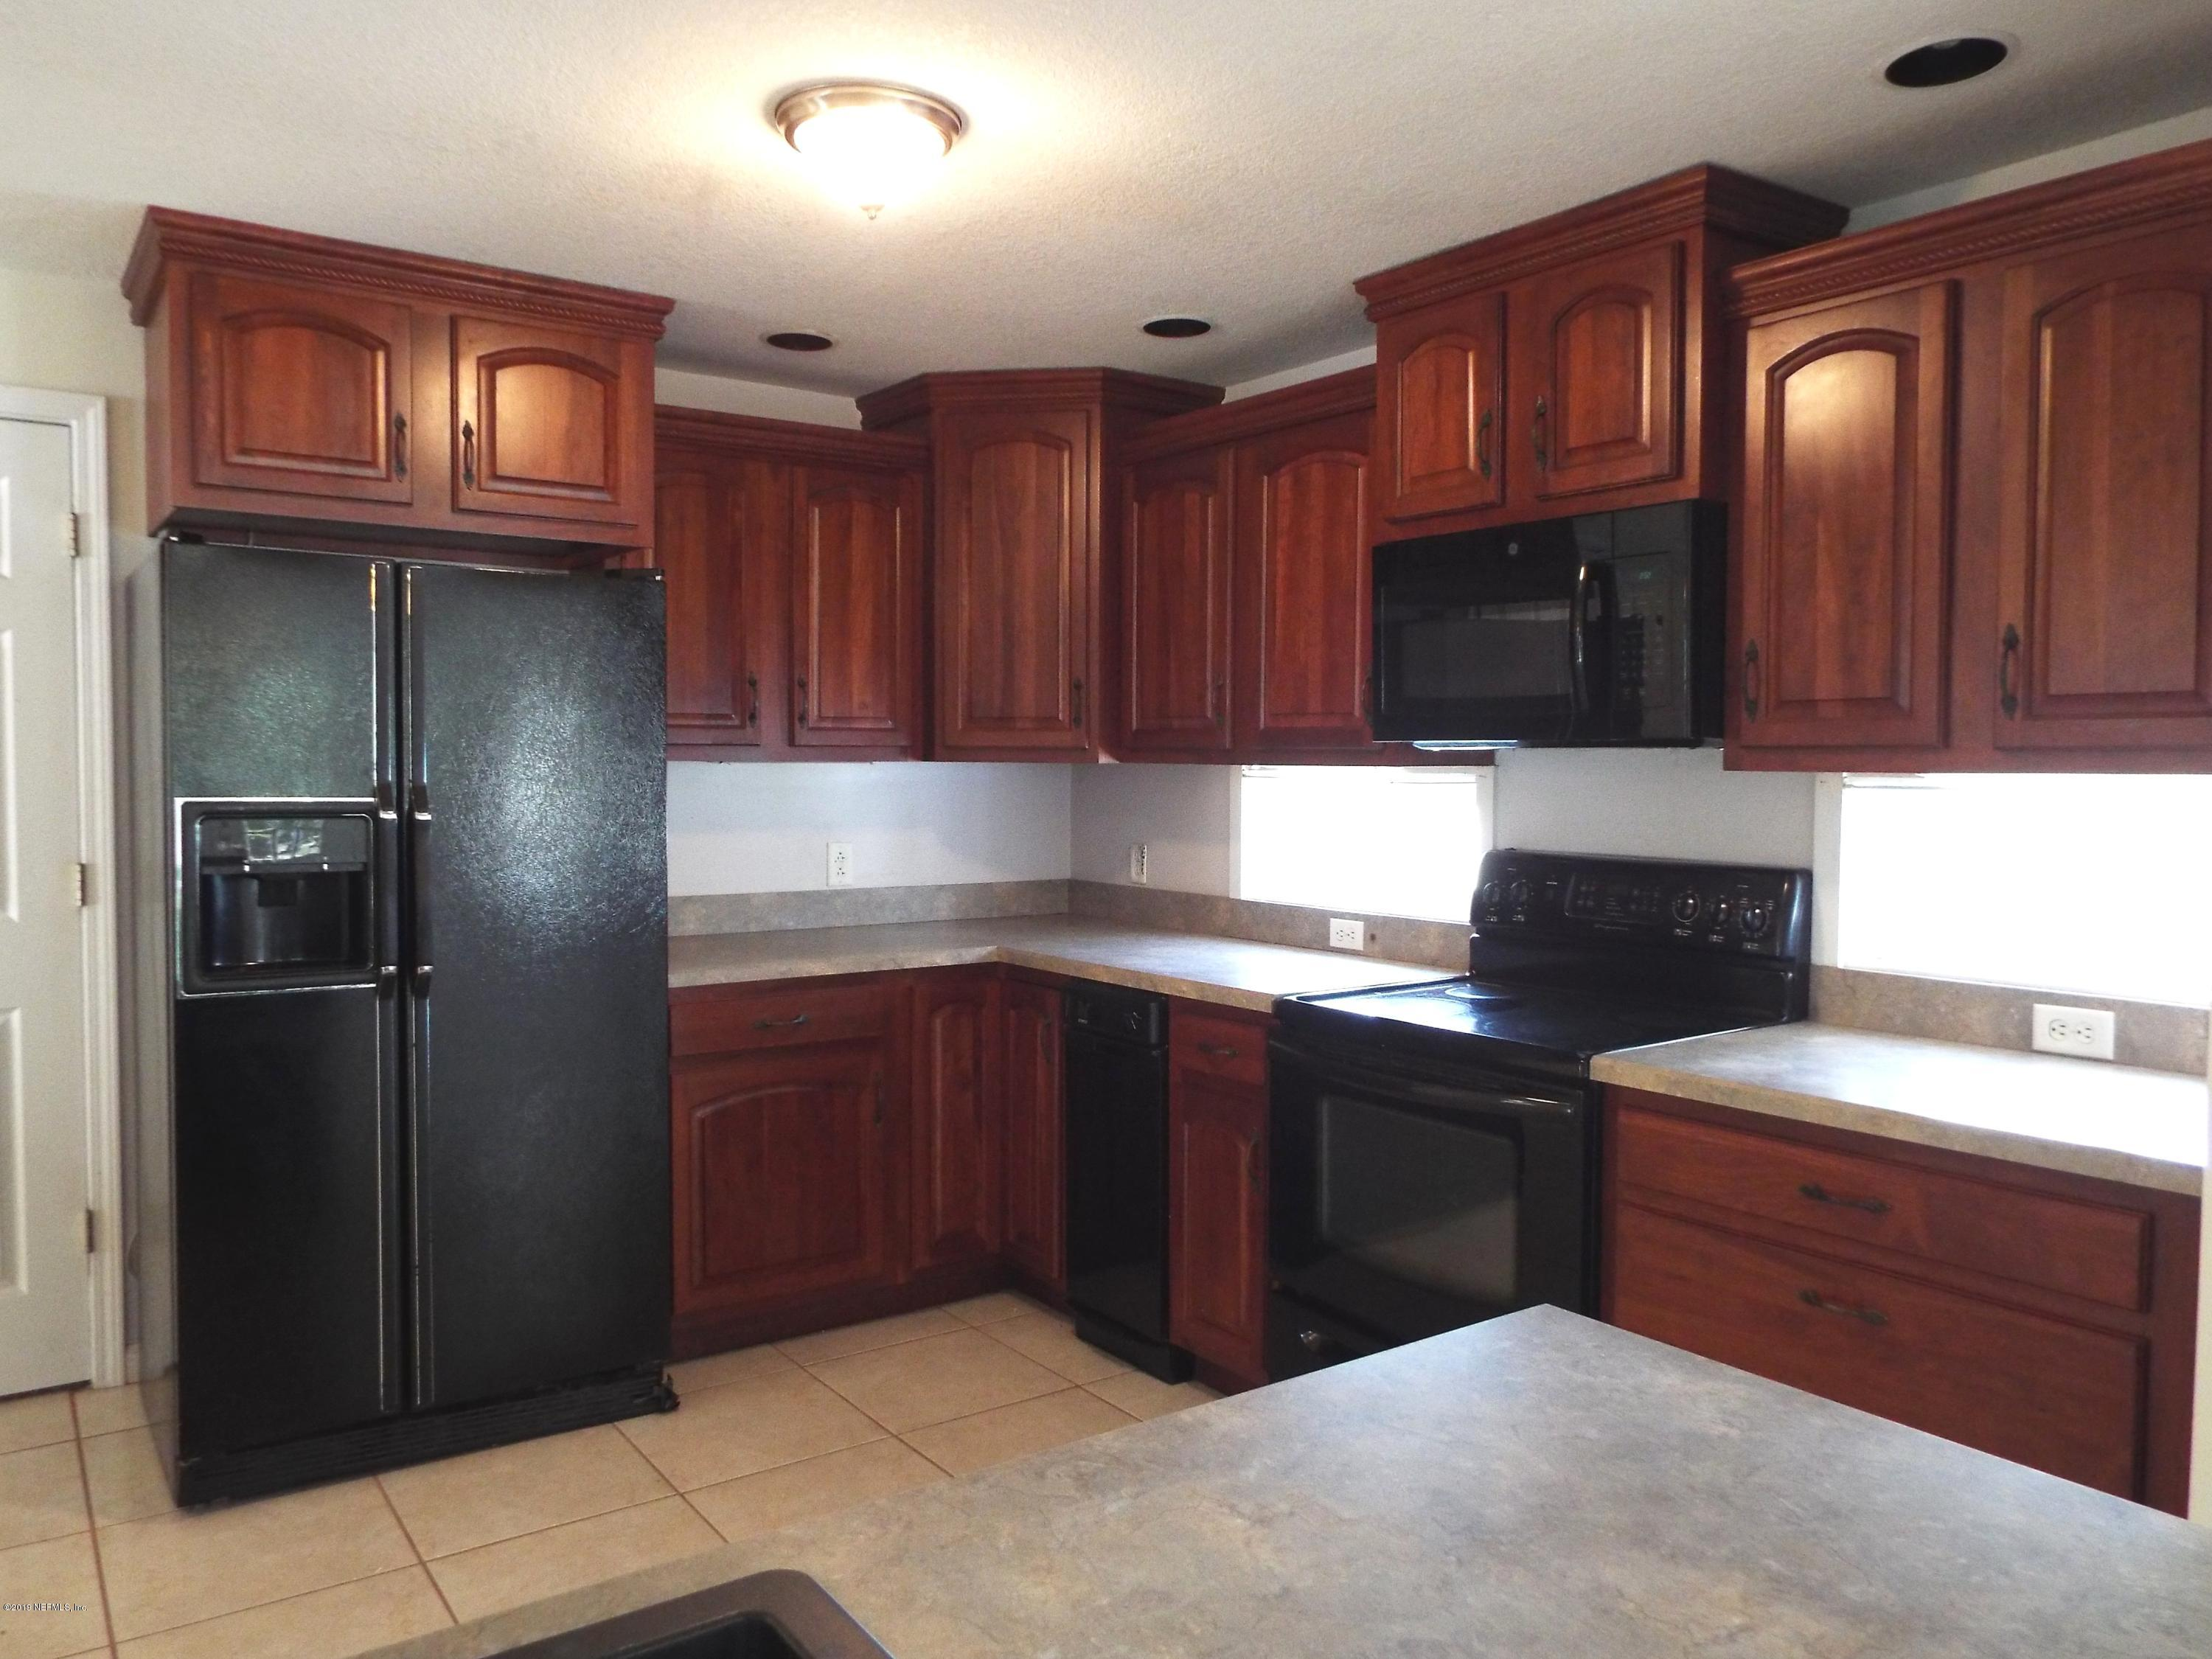 128 SILVER LAKE, PALATKA, FLORIDA 32177, 4 Bedrooms Bedrooms, ,2 BathroomsBathrooms,Residential - single family,For sale,SILVER LAKE,985574